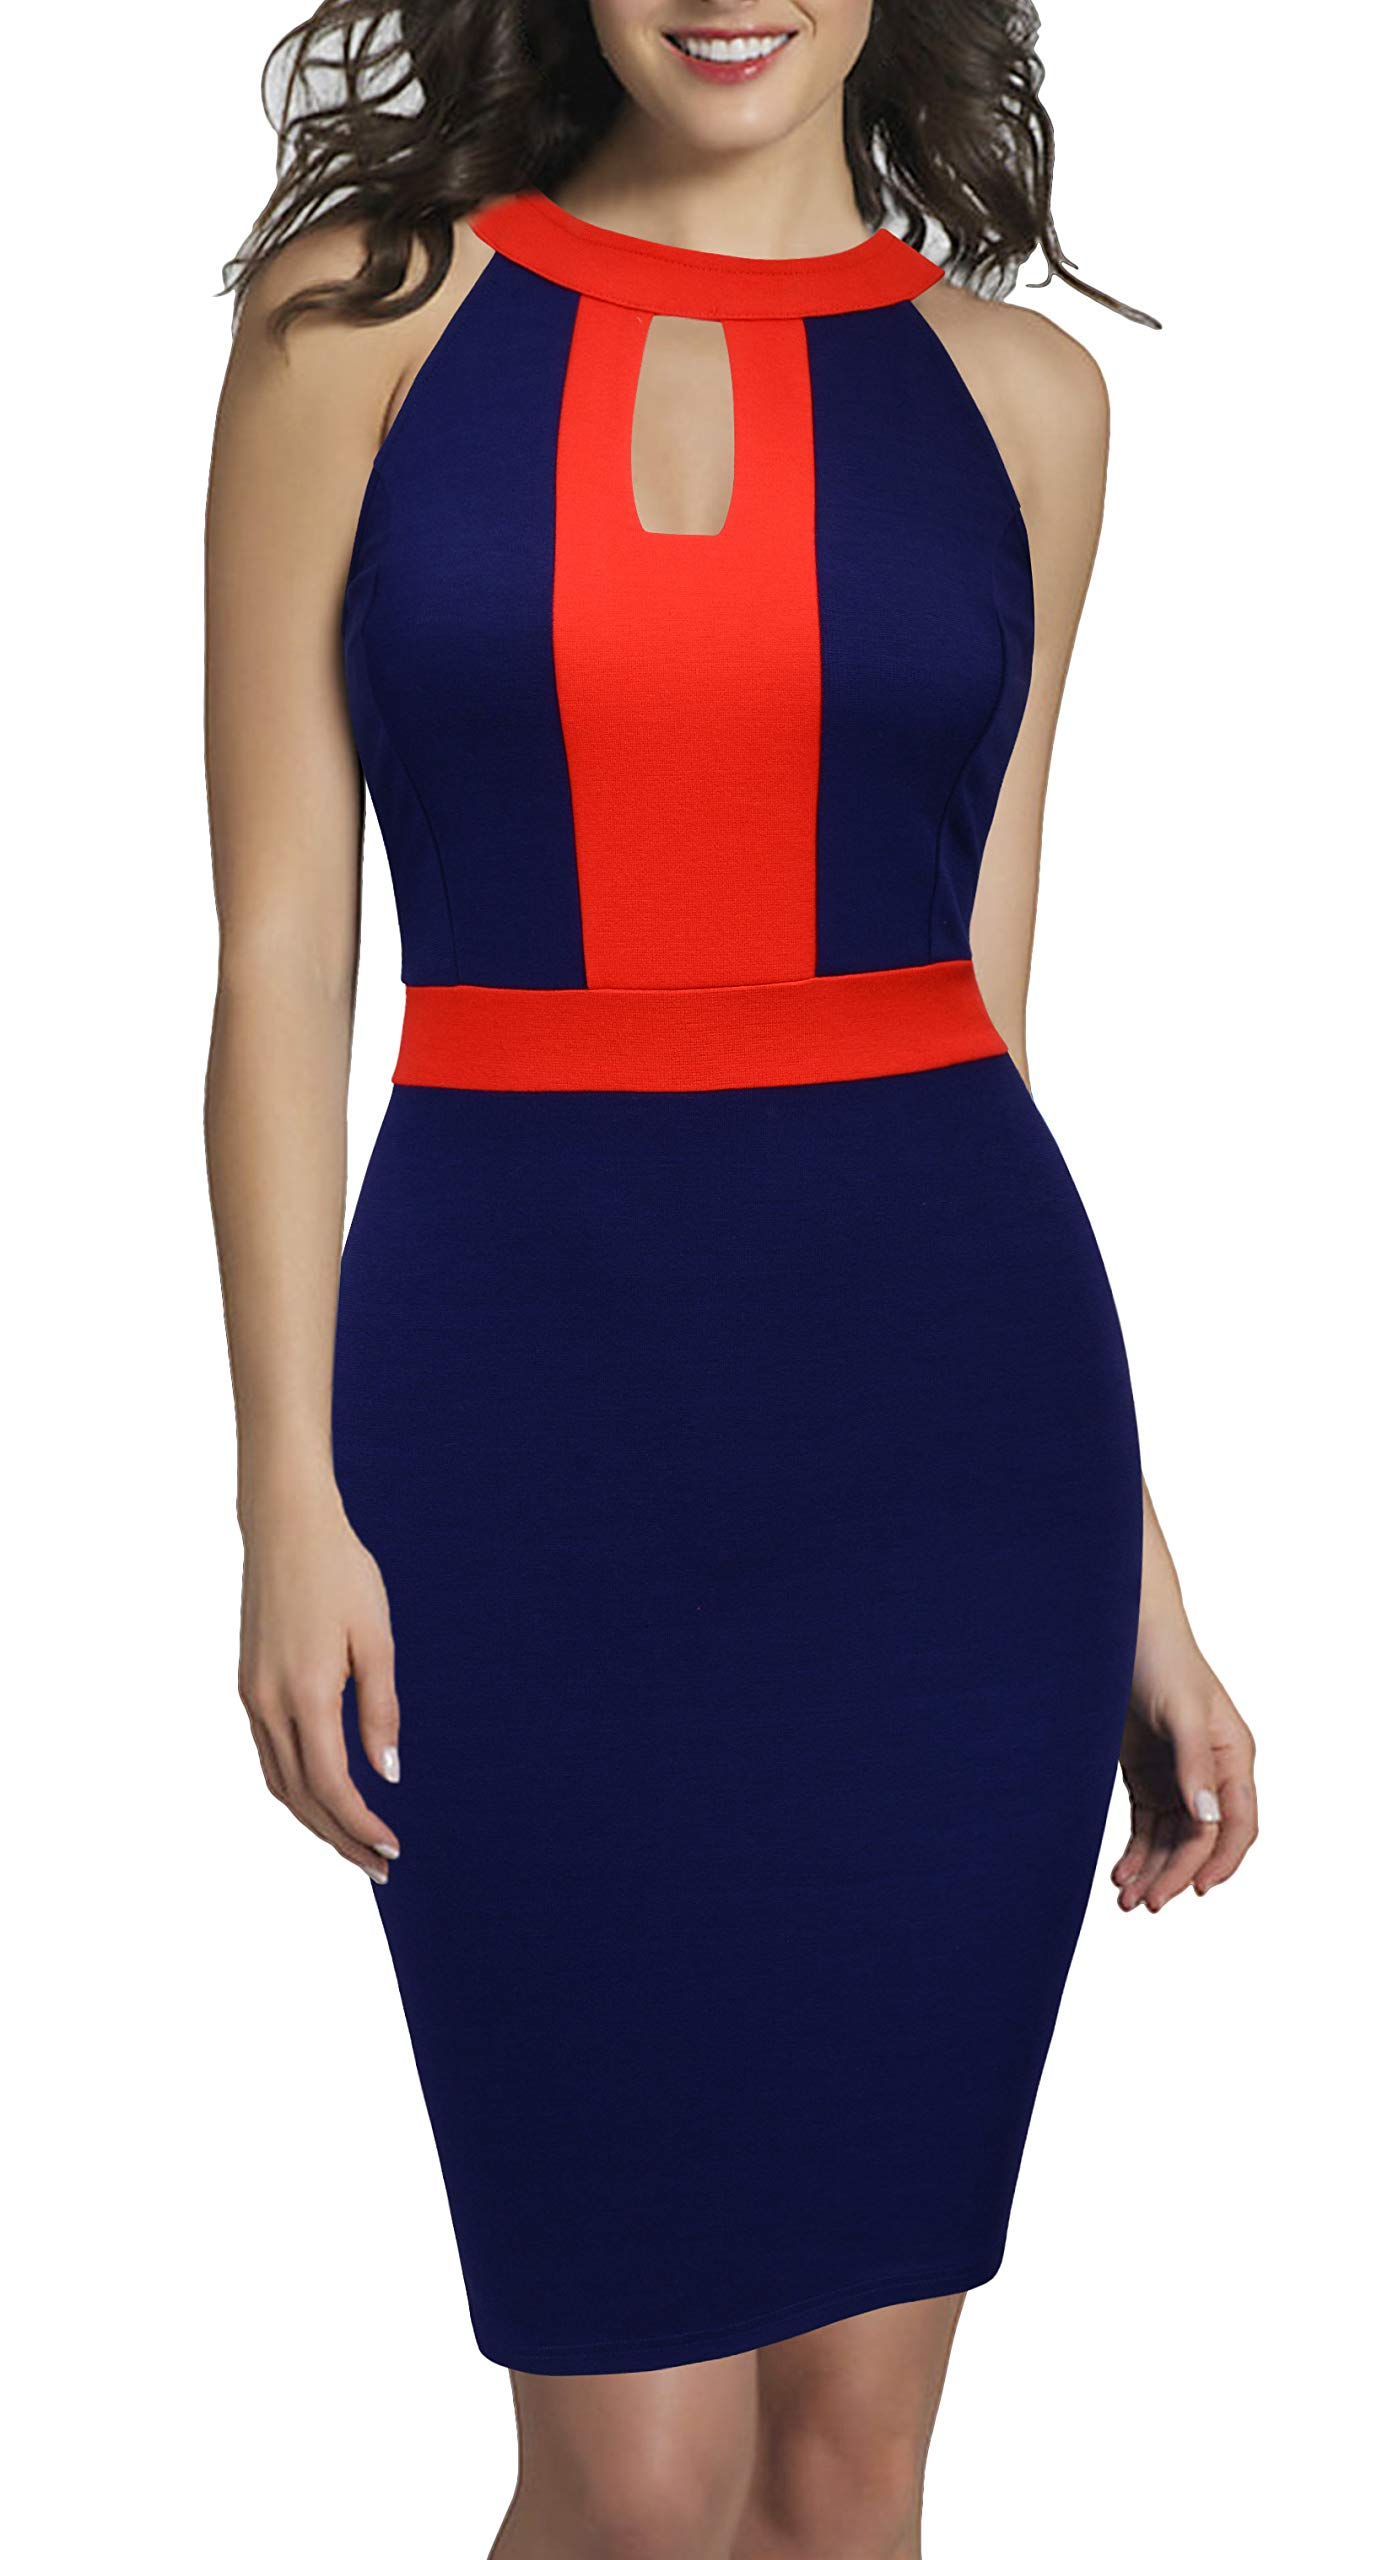 Available at Amazon: REPHYLLIS Women's Elegant Half Sleeveless Business Causal Party Pencil Work Dress